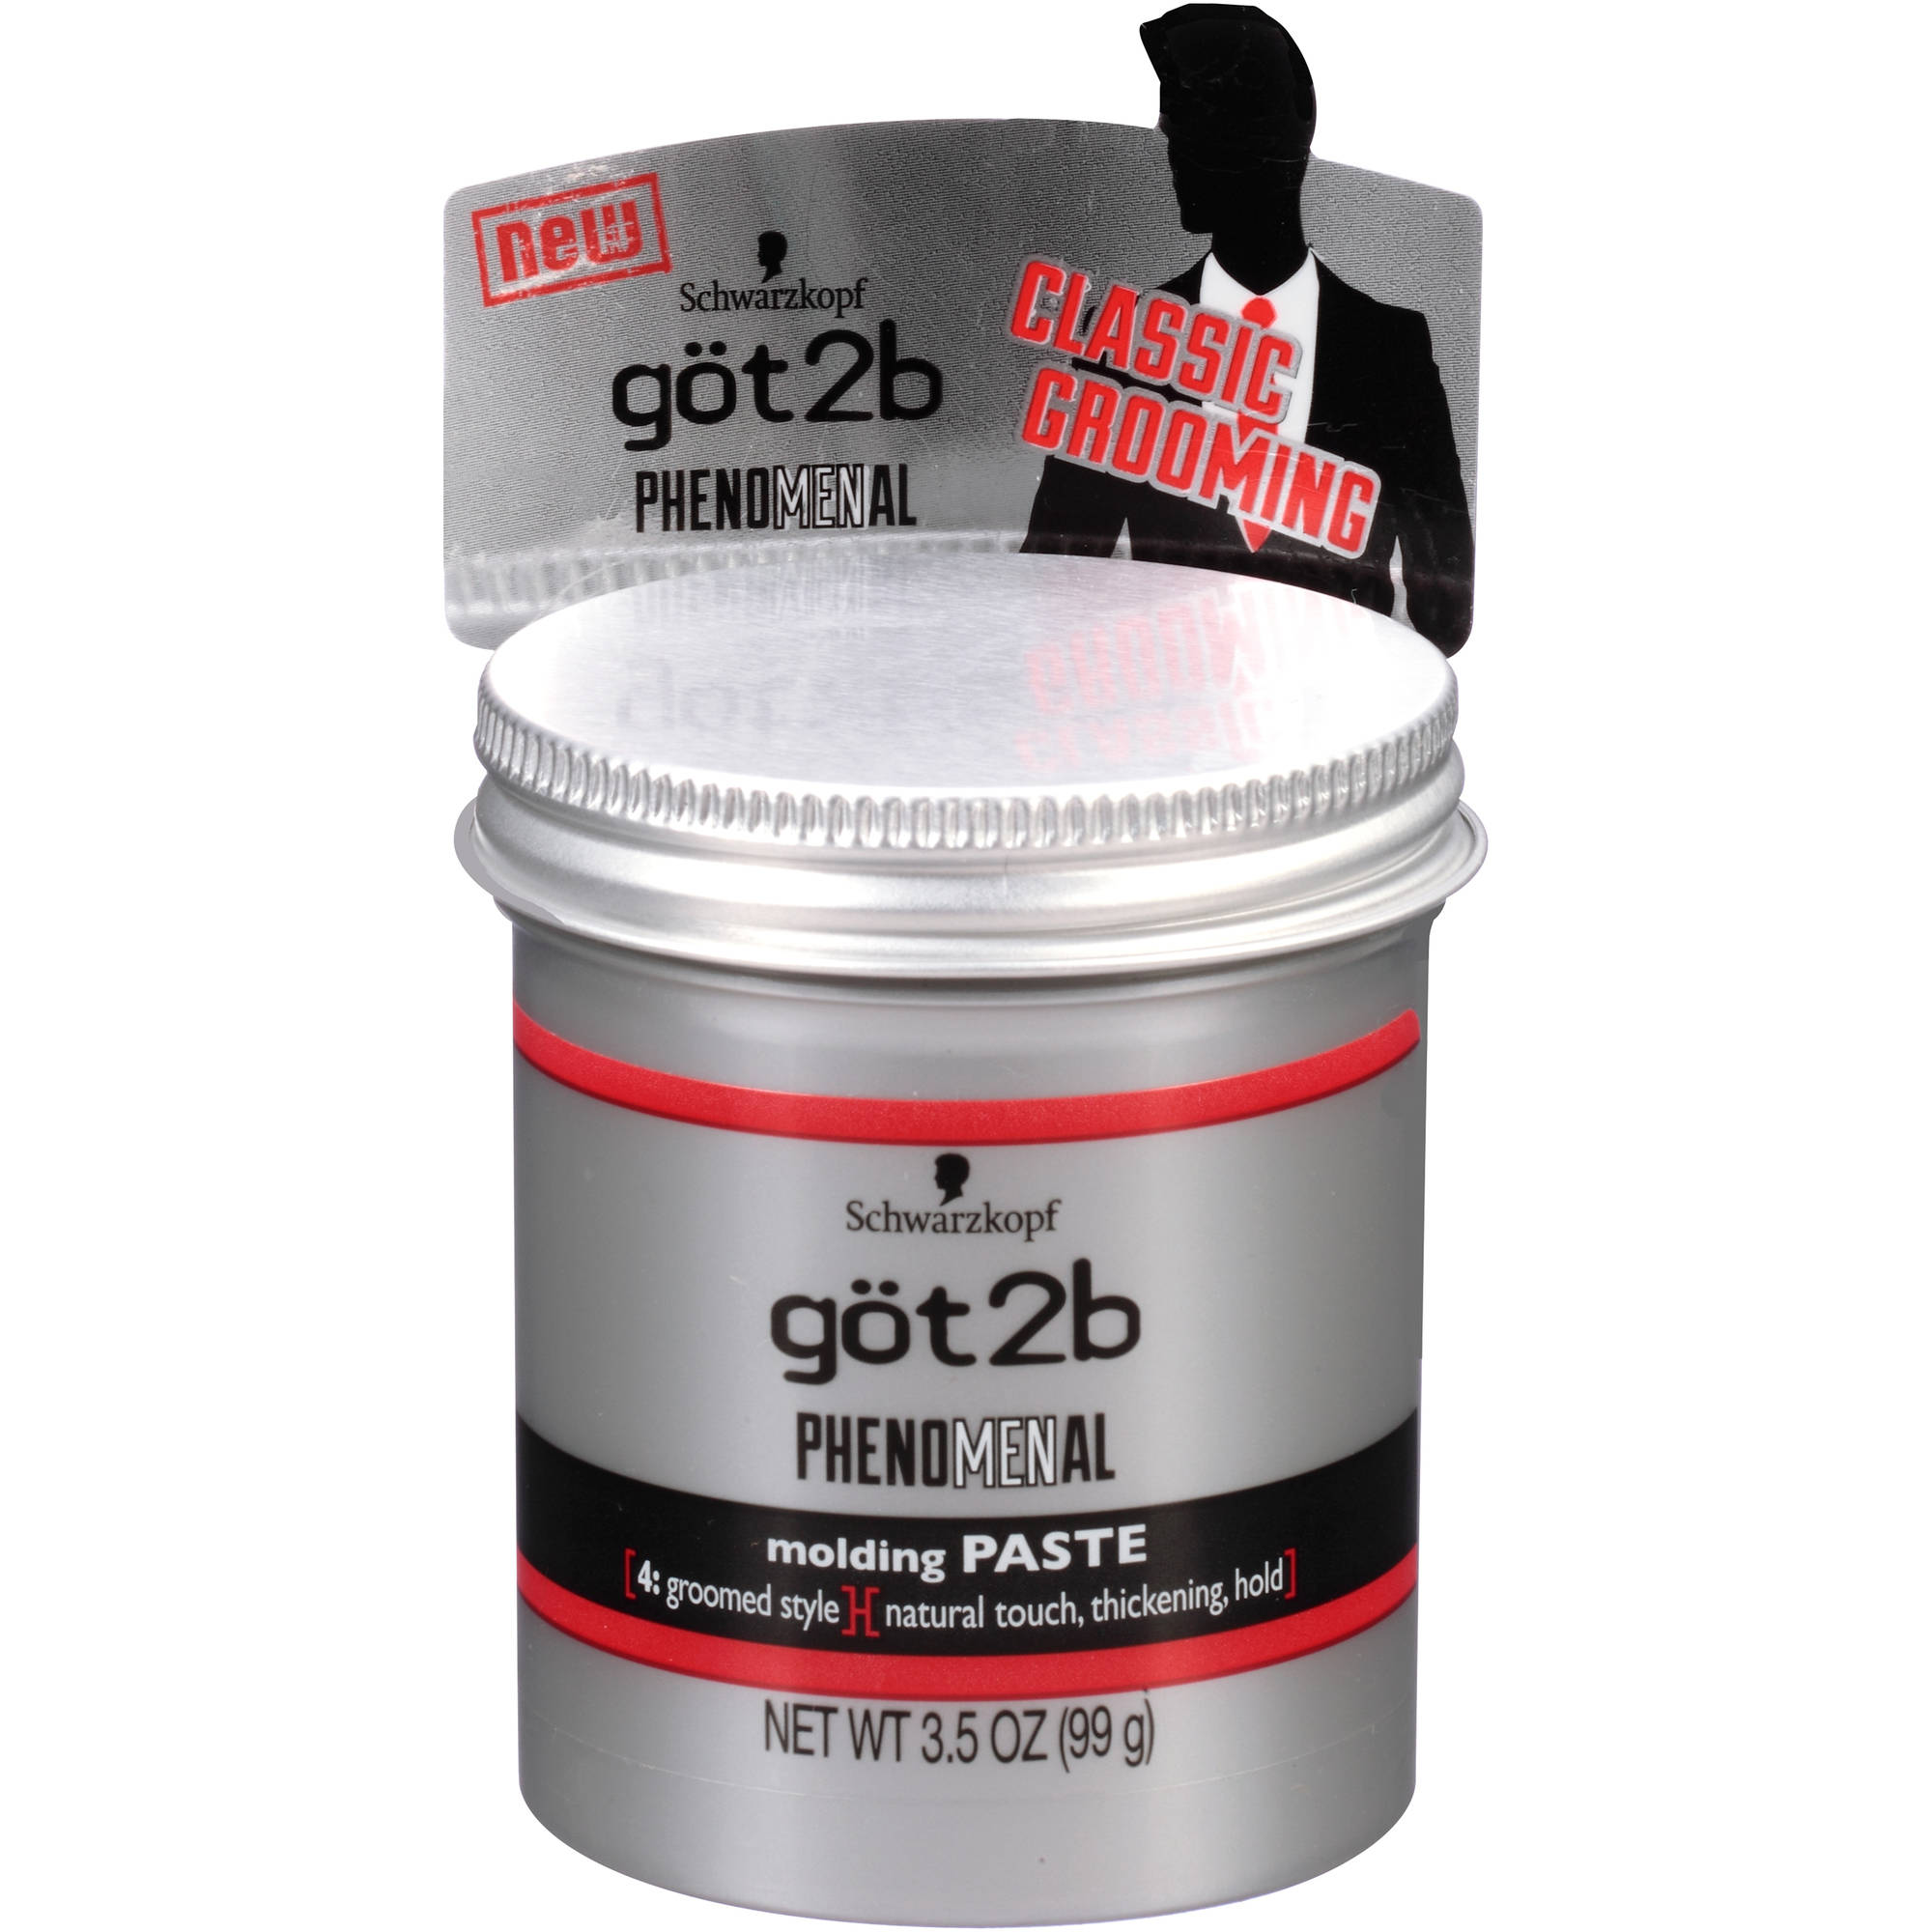 Schwarzkopf got2b Phenomenal Molding Paste, 3.5 oz